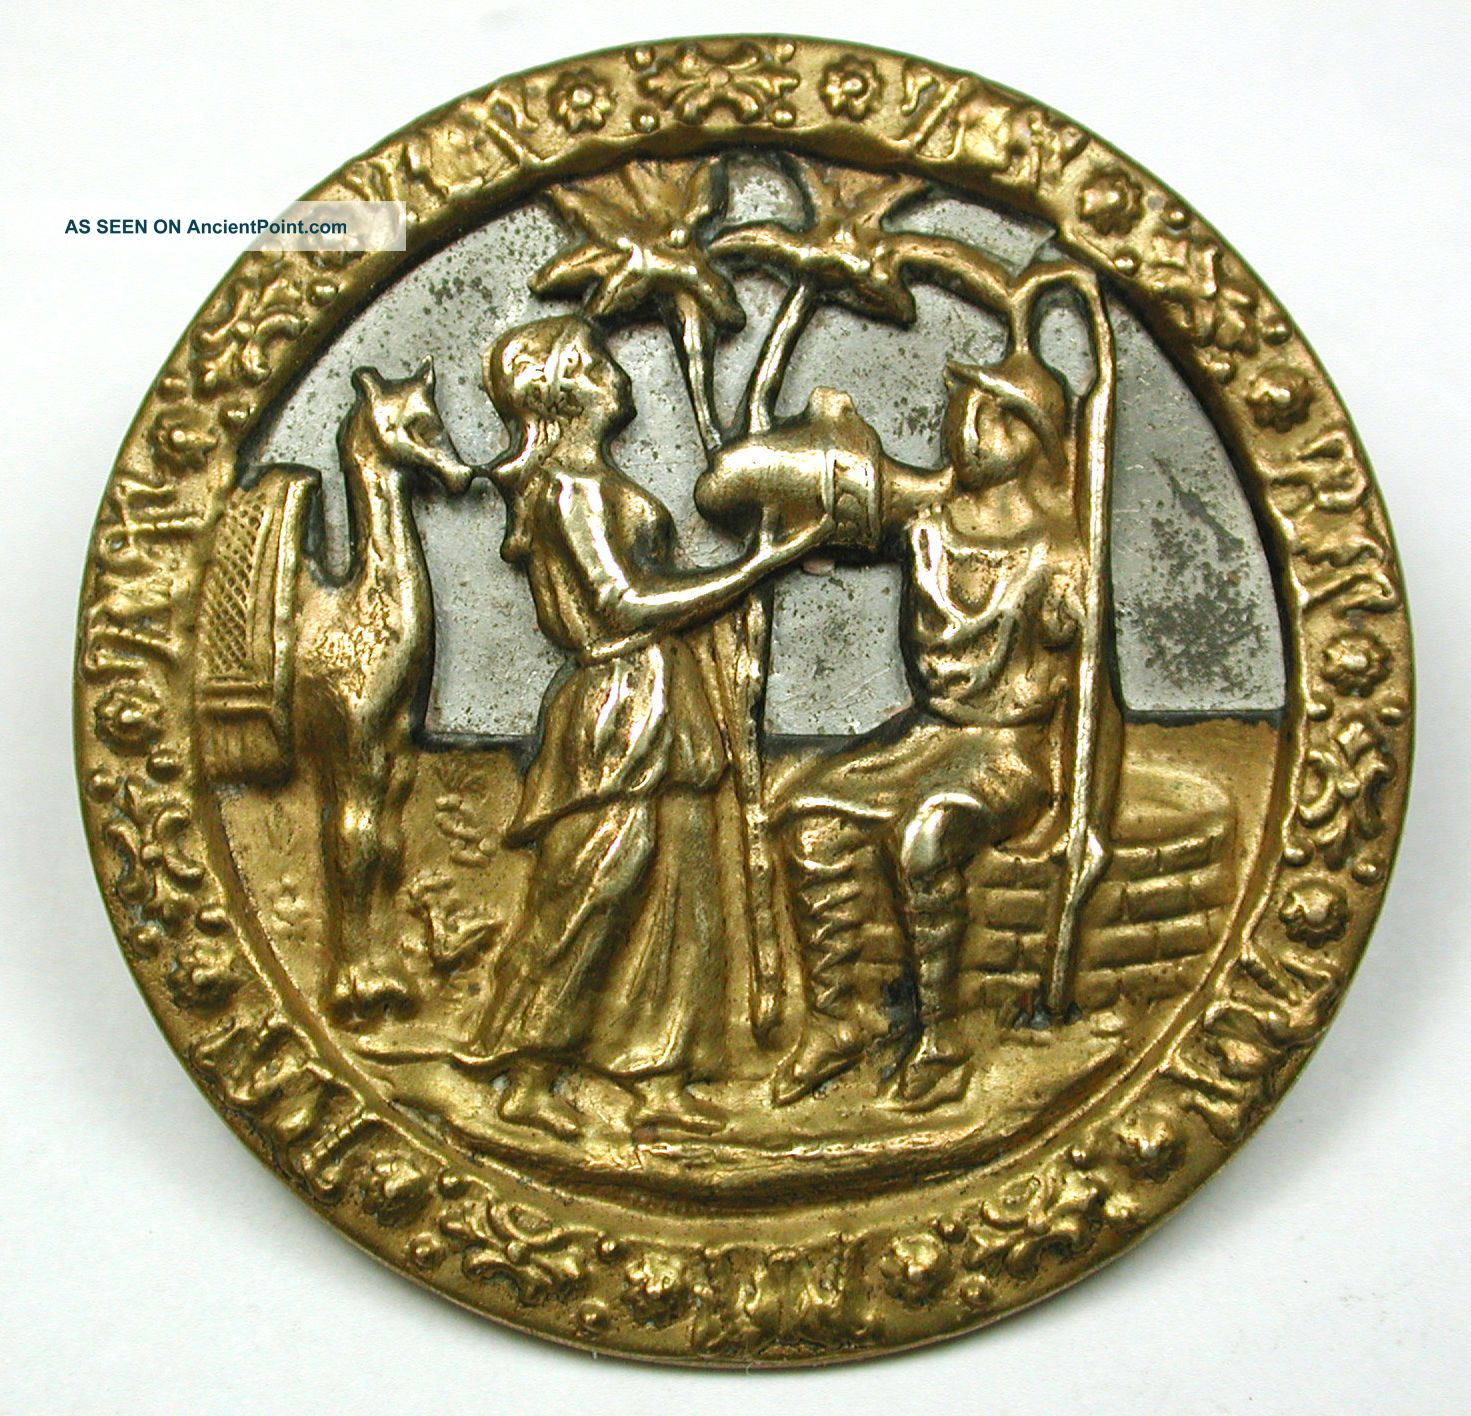 Scarce Lg Antique Brass Button Rebecca & Eliezer At The Well - 1 & 1/2